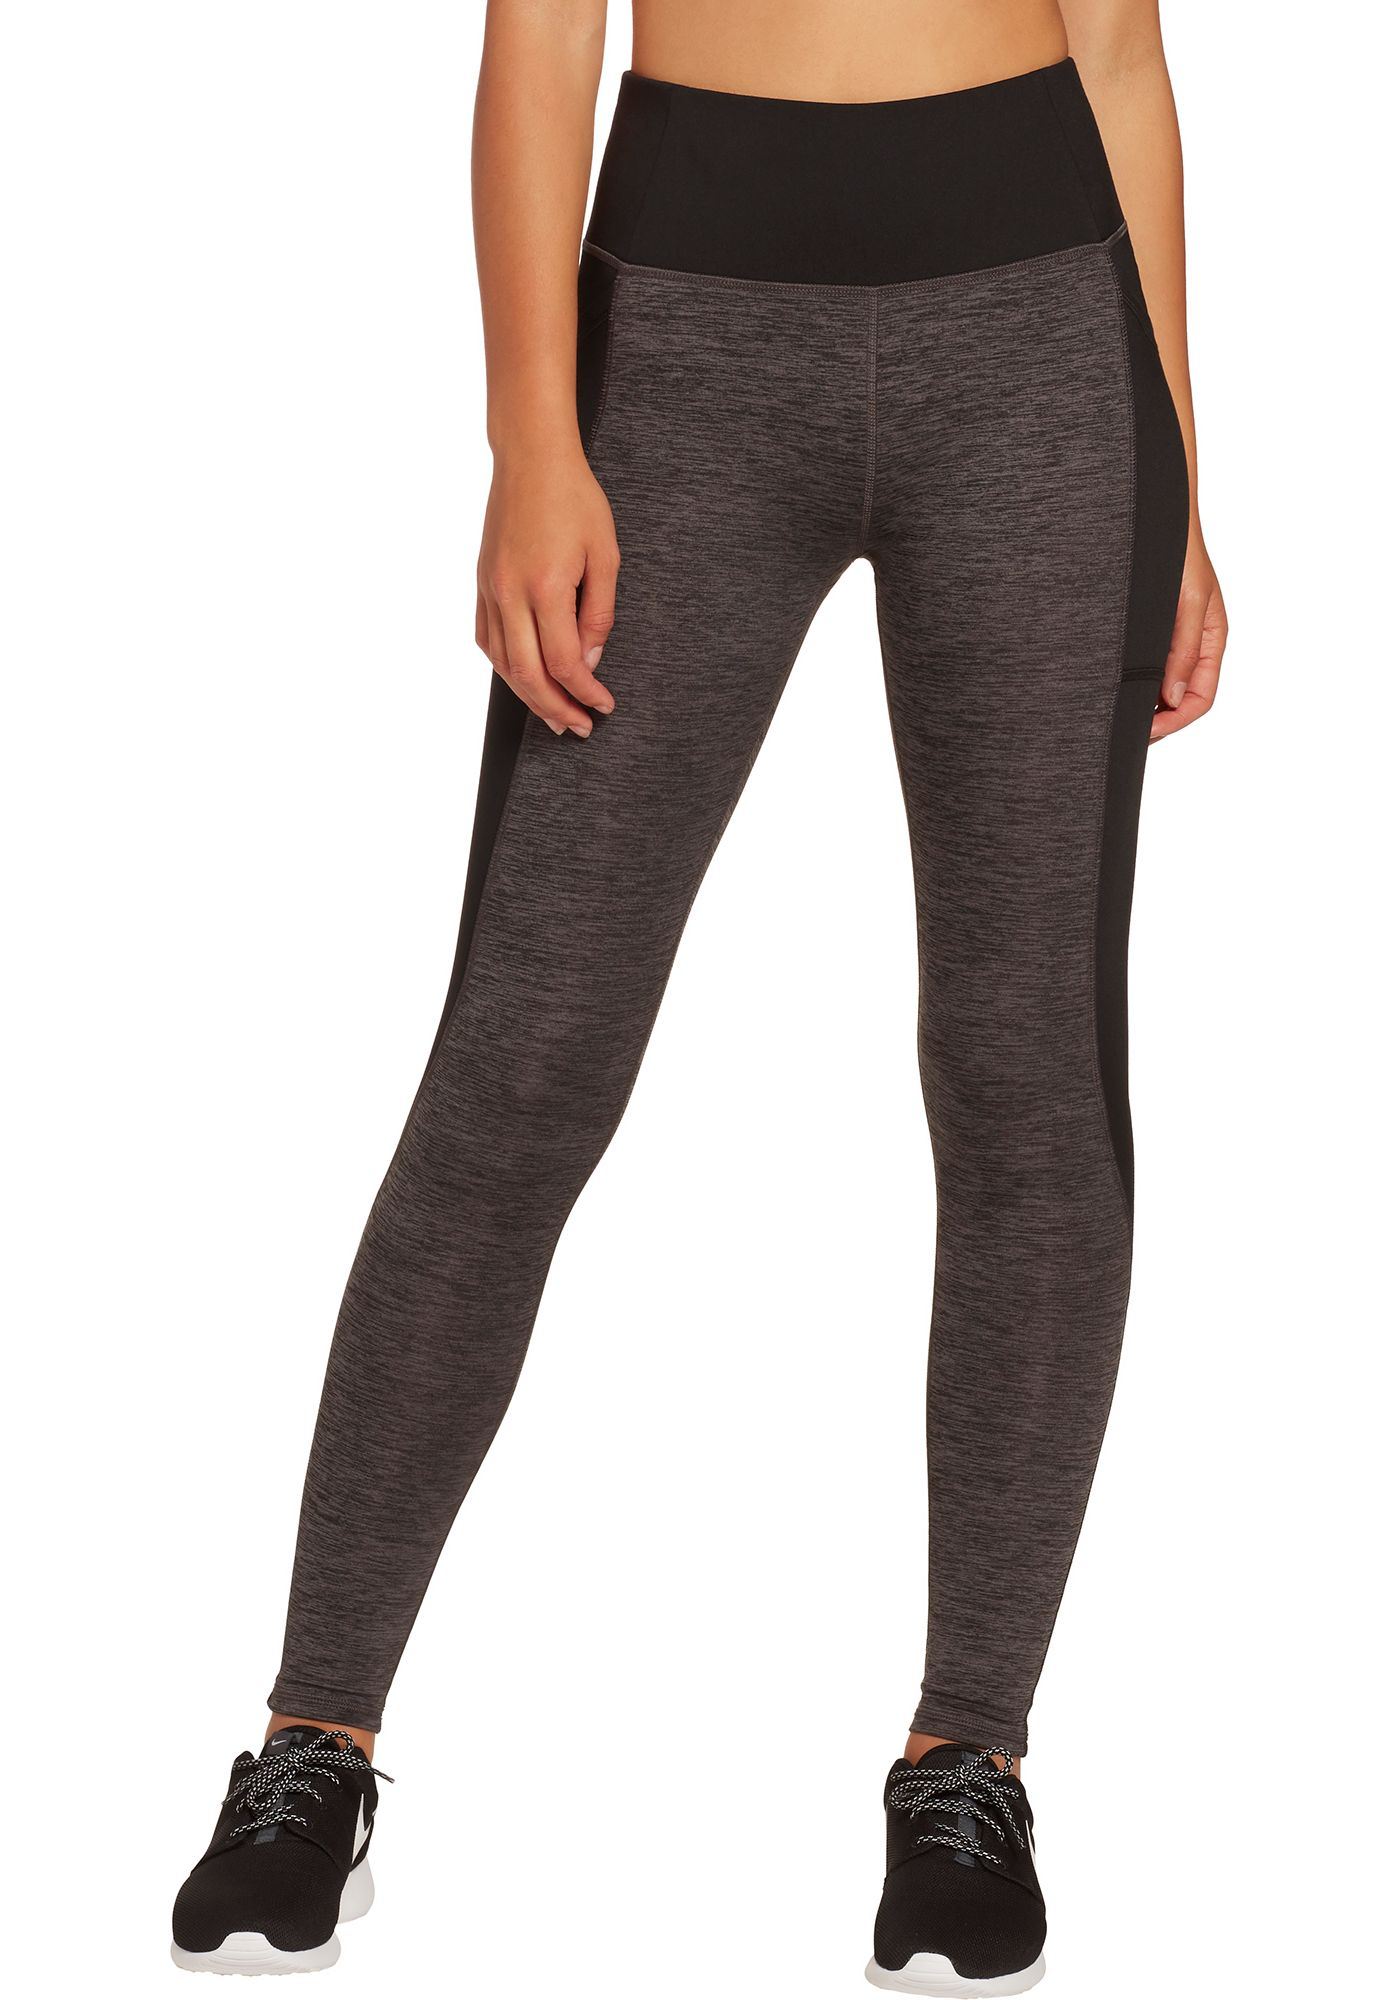 DSG Women's Cold Weather Compression Tights